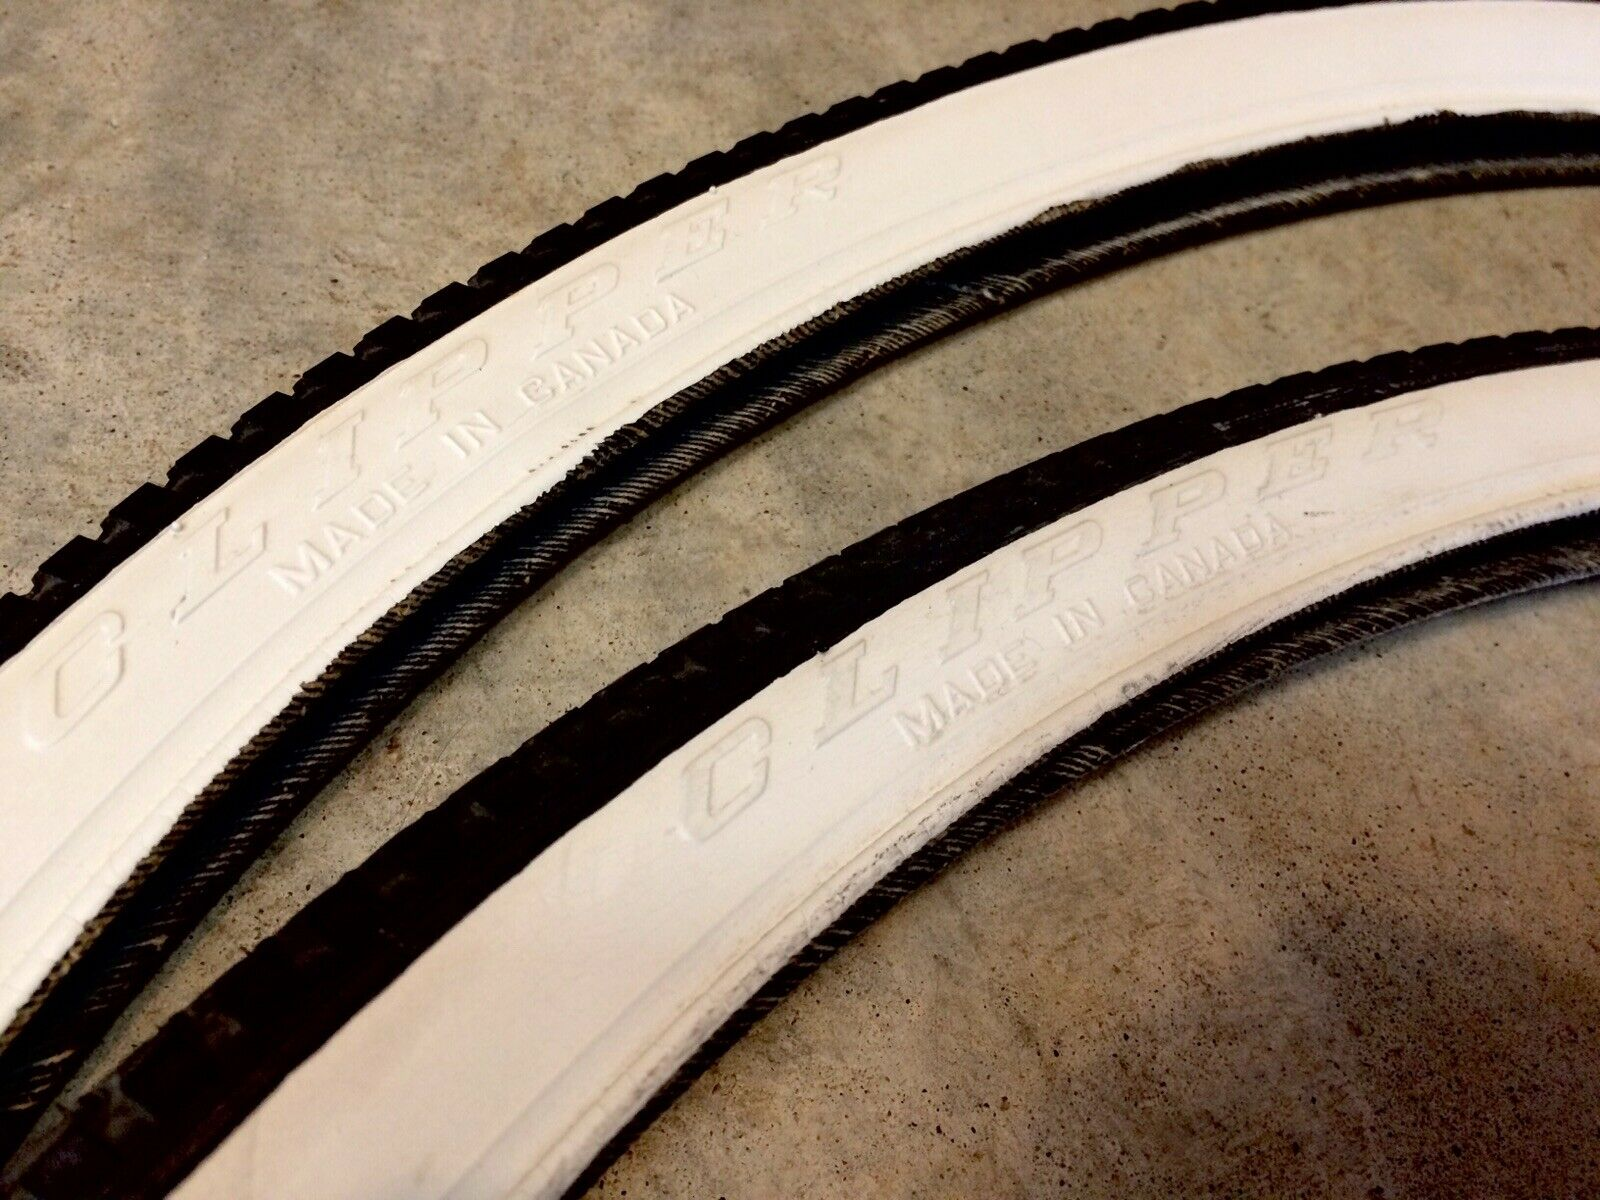 "26 X 1 1 4"" Bicycle Tires - British Club -  Schwinn- NOS - ISO 597-"